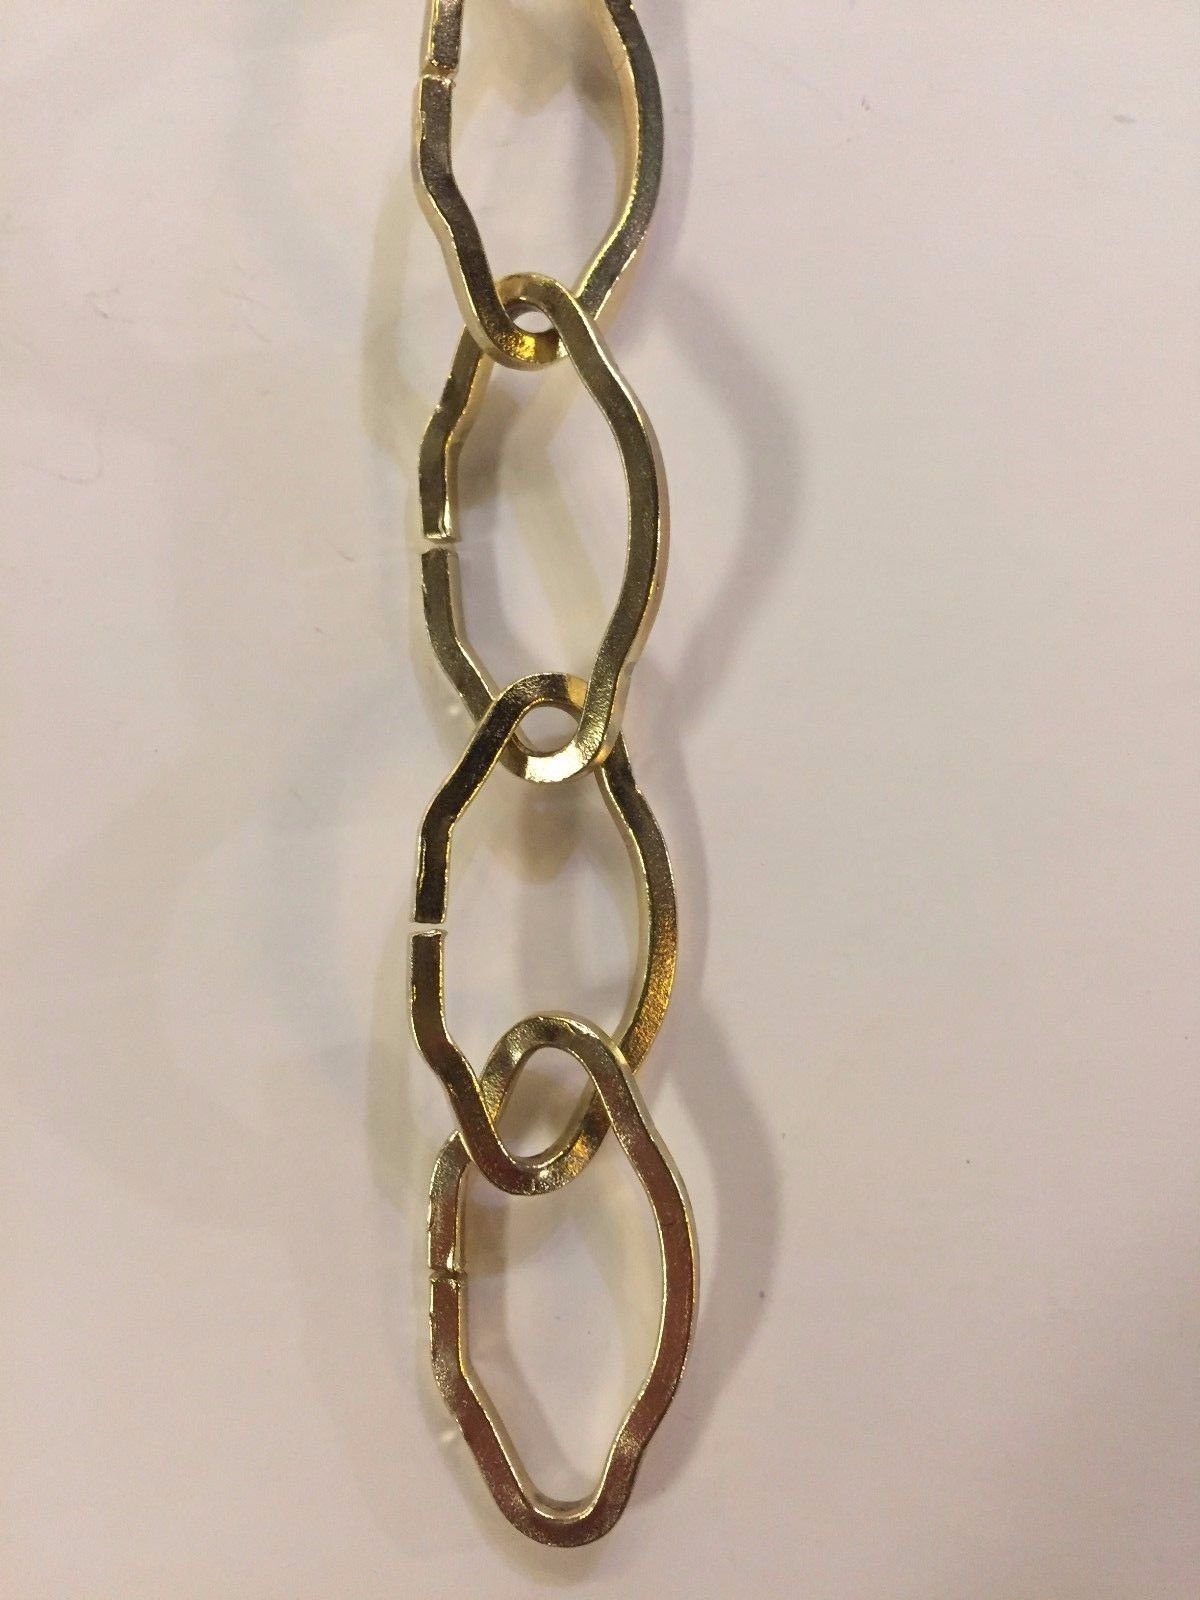 Brass Gothic Chain Chandelier Chain Link Medium Duty Gold Color by Bethesda Design, LLC